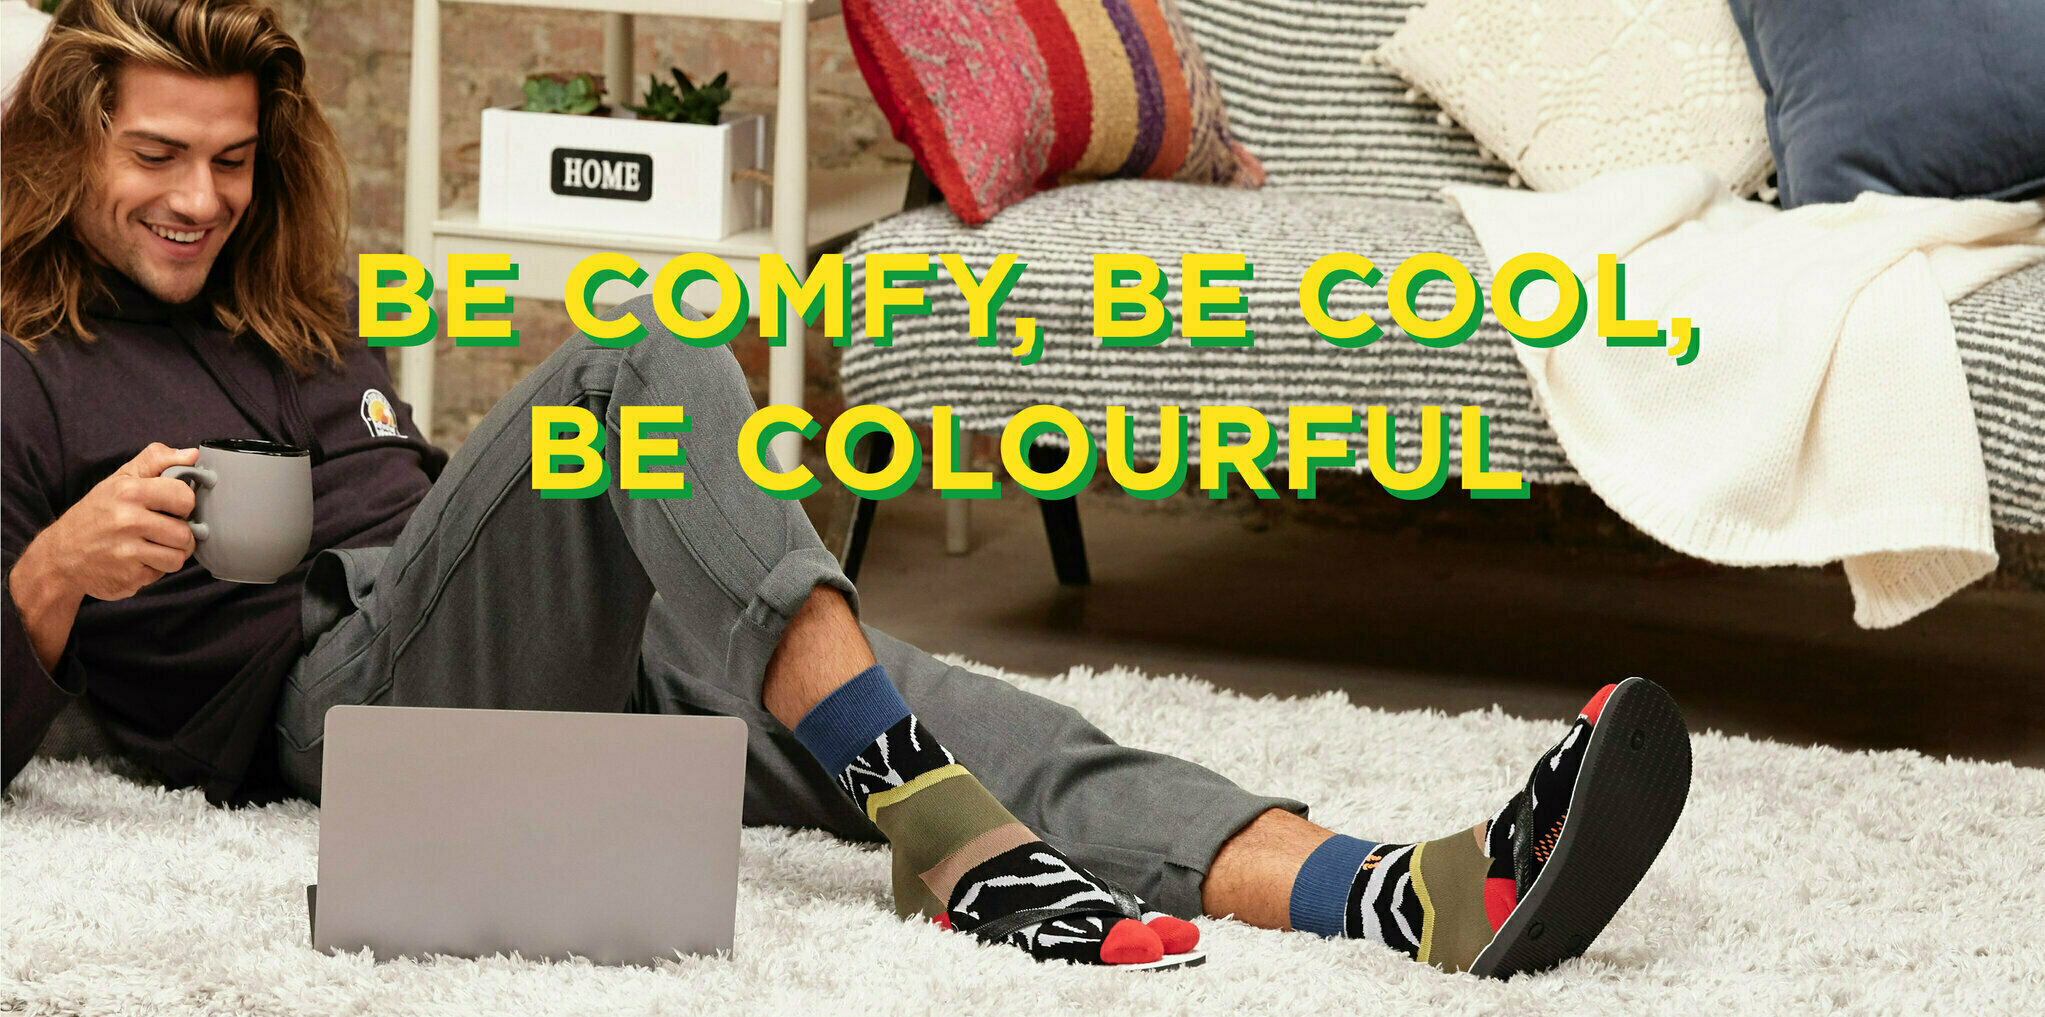 Be comfy, be cool,